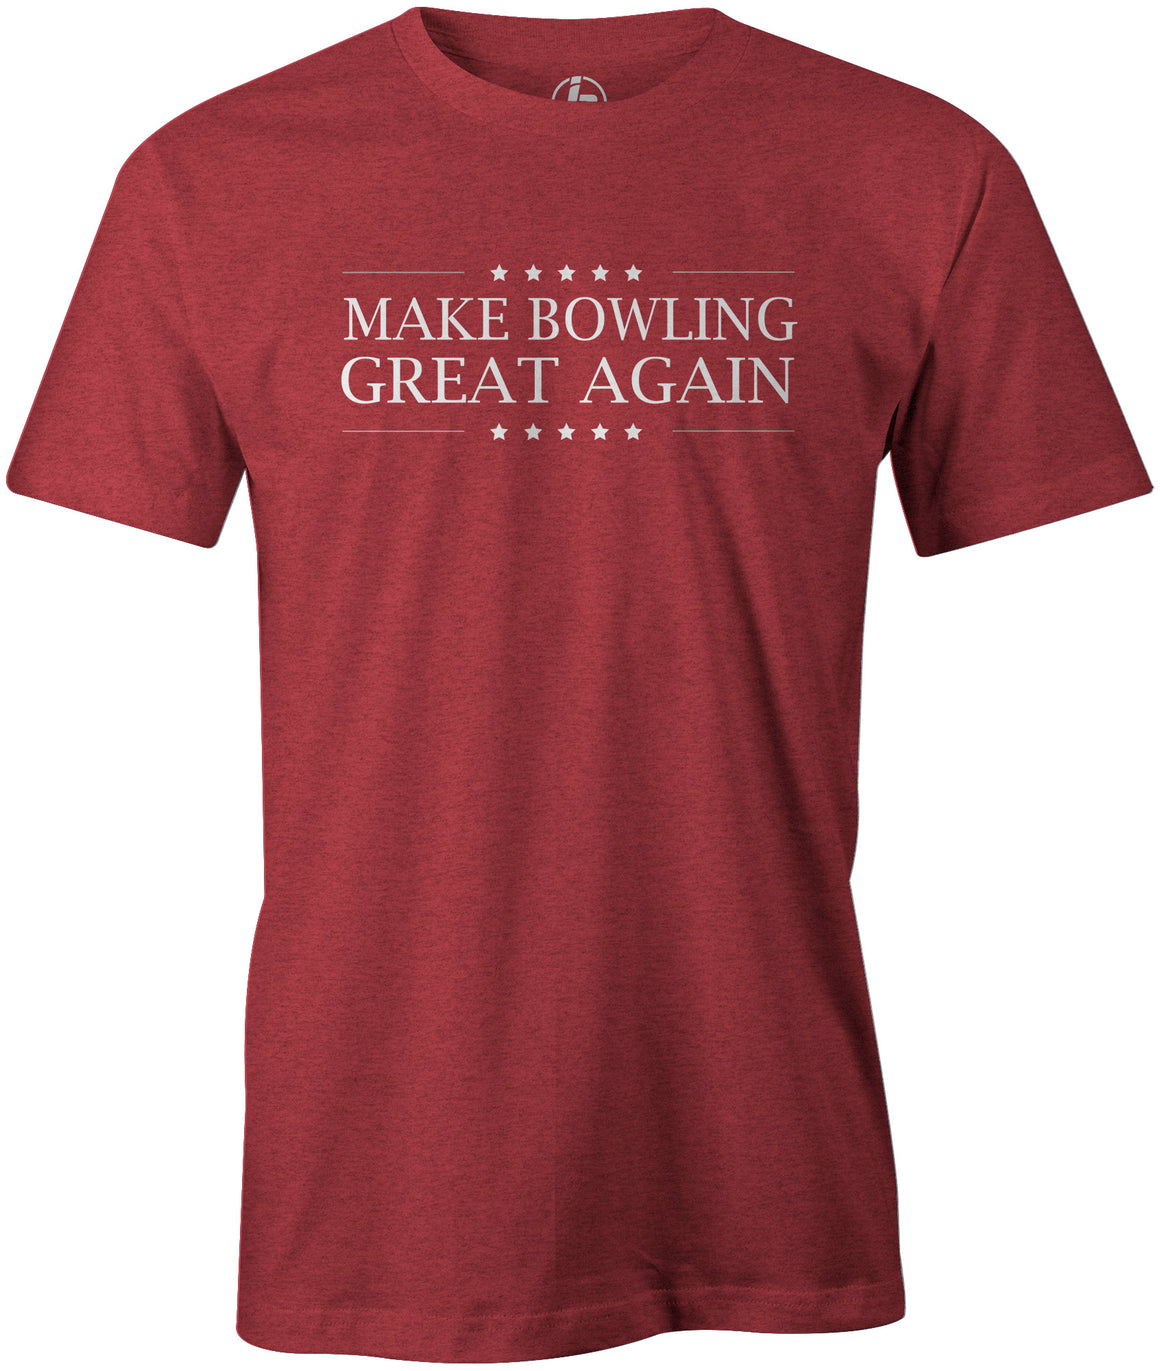 Make Bowling Great Again